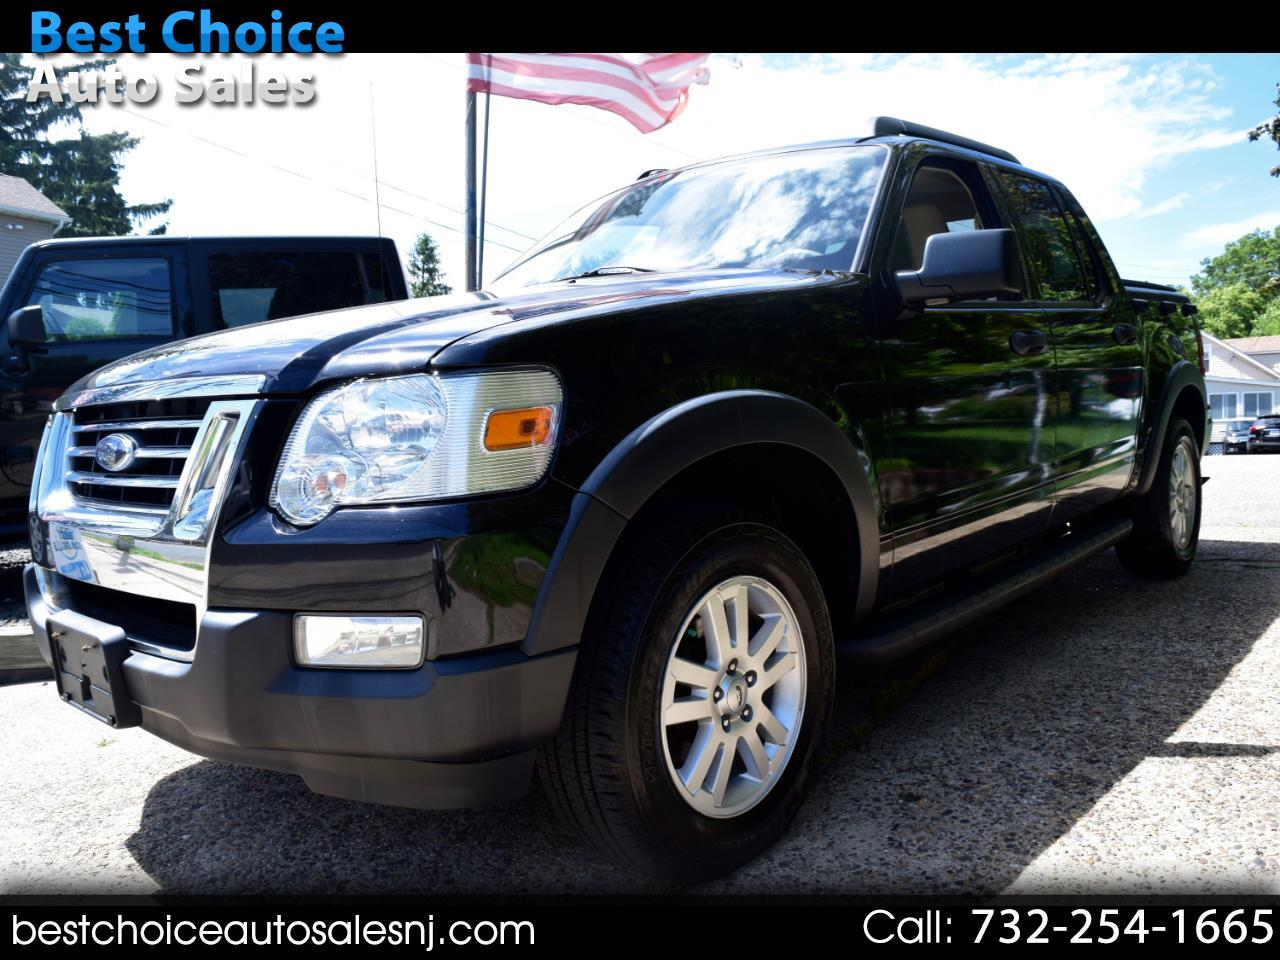 2010 Ford Explorer Sport Trac 4WD 4dr XLT